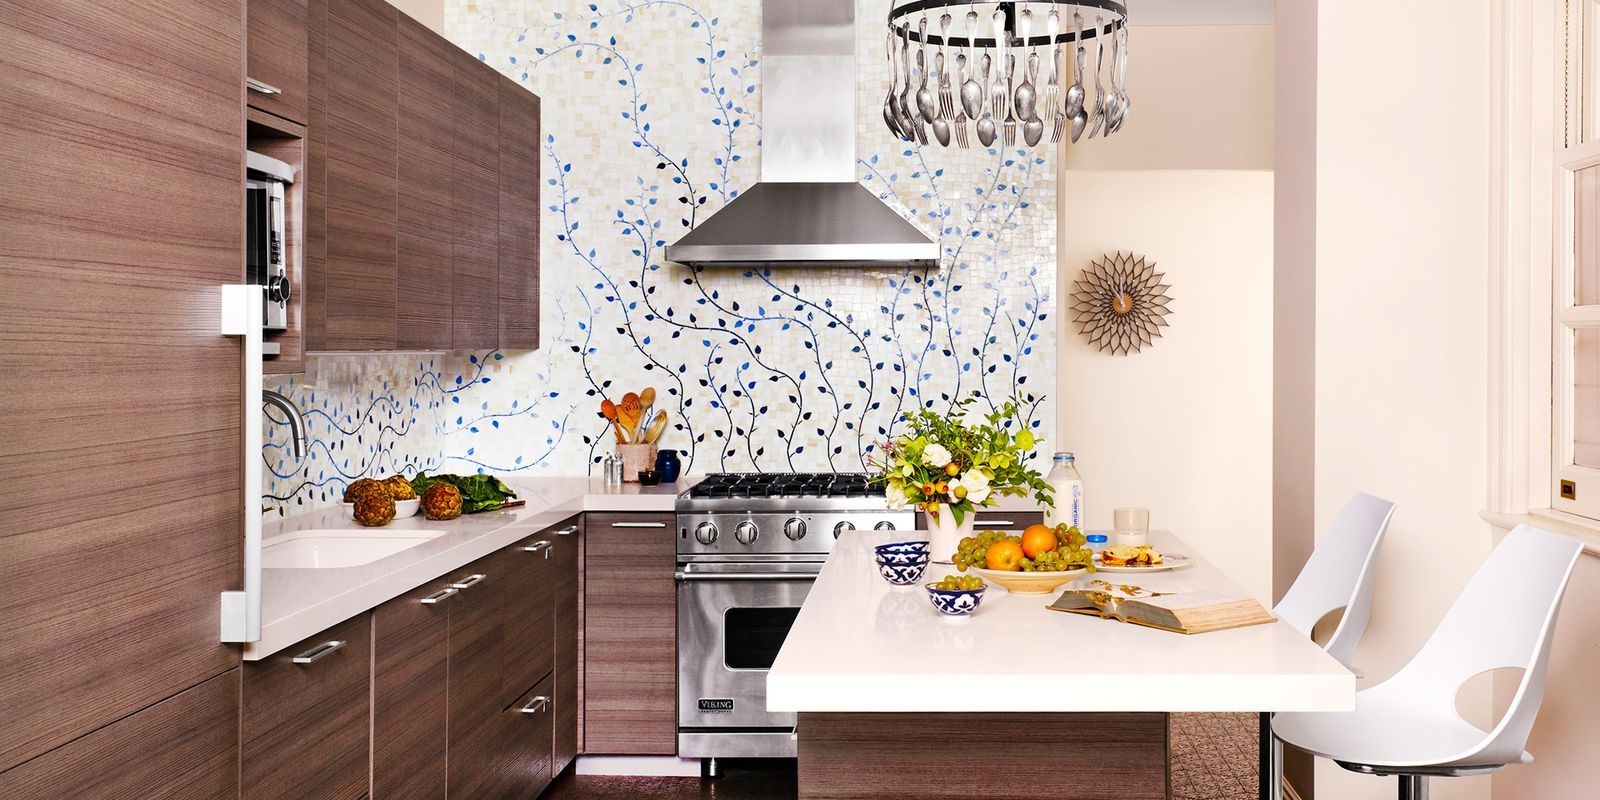 Tour a Modern Kitchen With a Whimsical Surprise